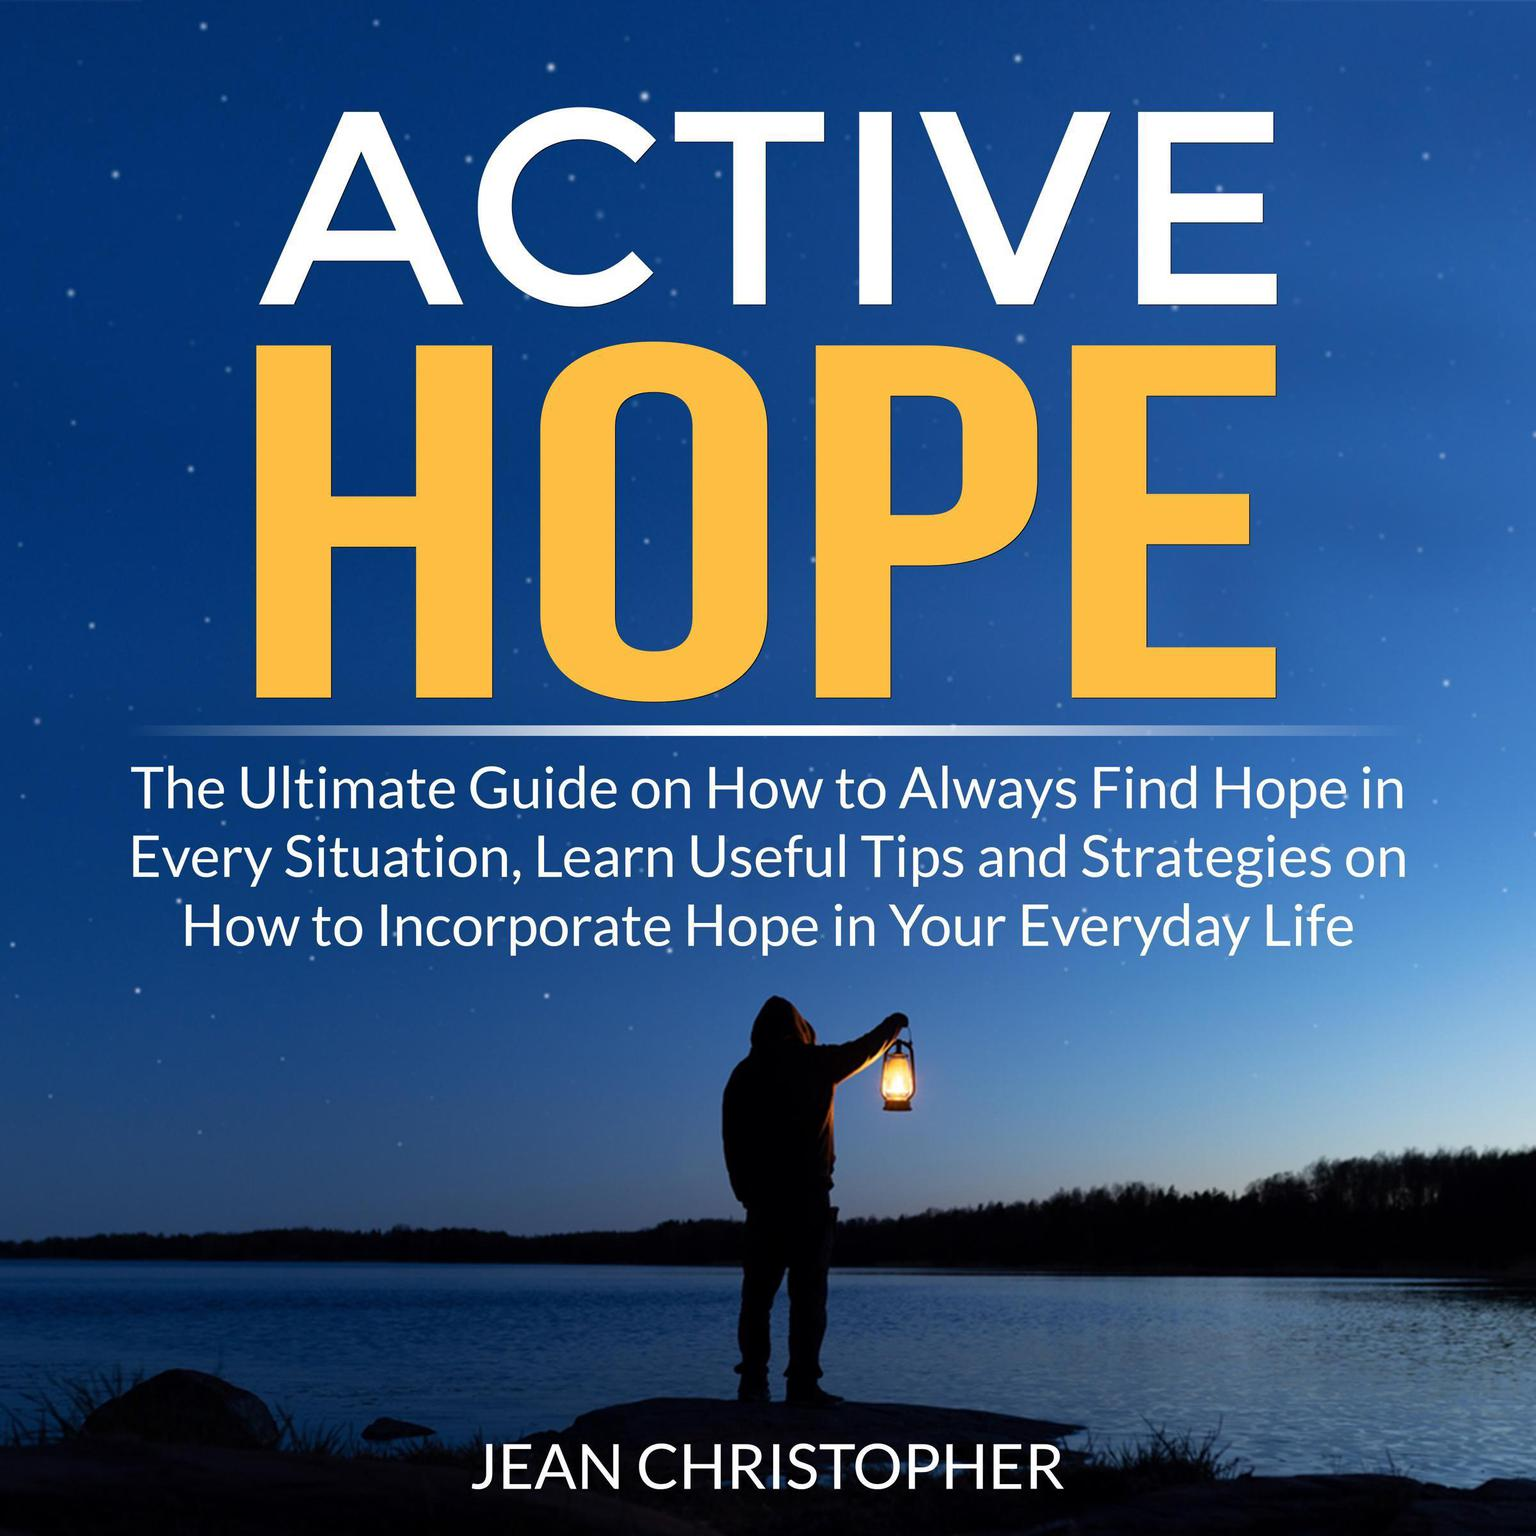 Active Hope: The Ultimate Guide on How to Always Find Hope in Every Situation, Learn Useful Tips and Strategies on How to Incorporate Hope in Your Everyday Life Audiobook, by Jean Chrisopher